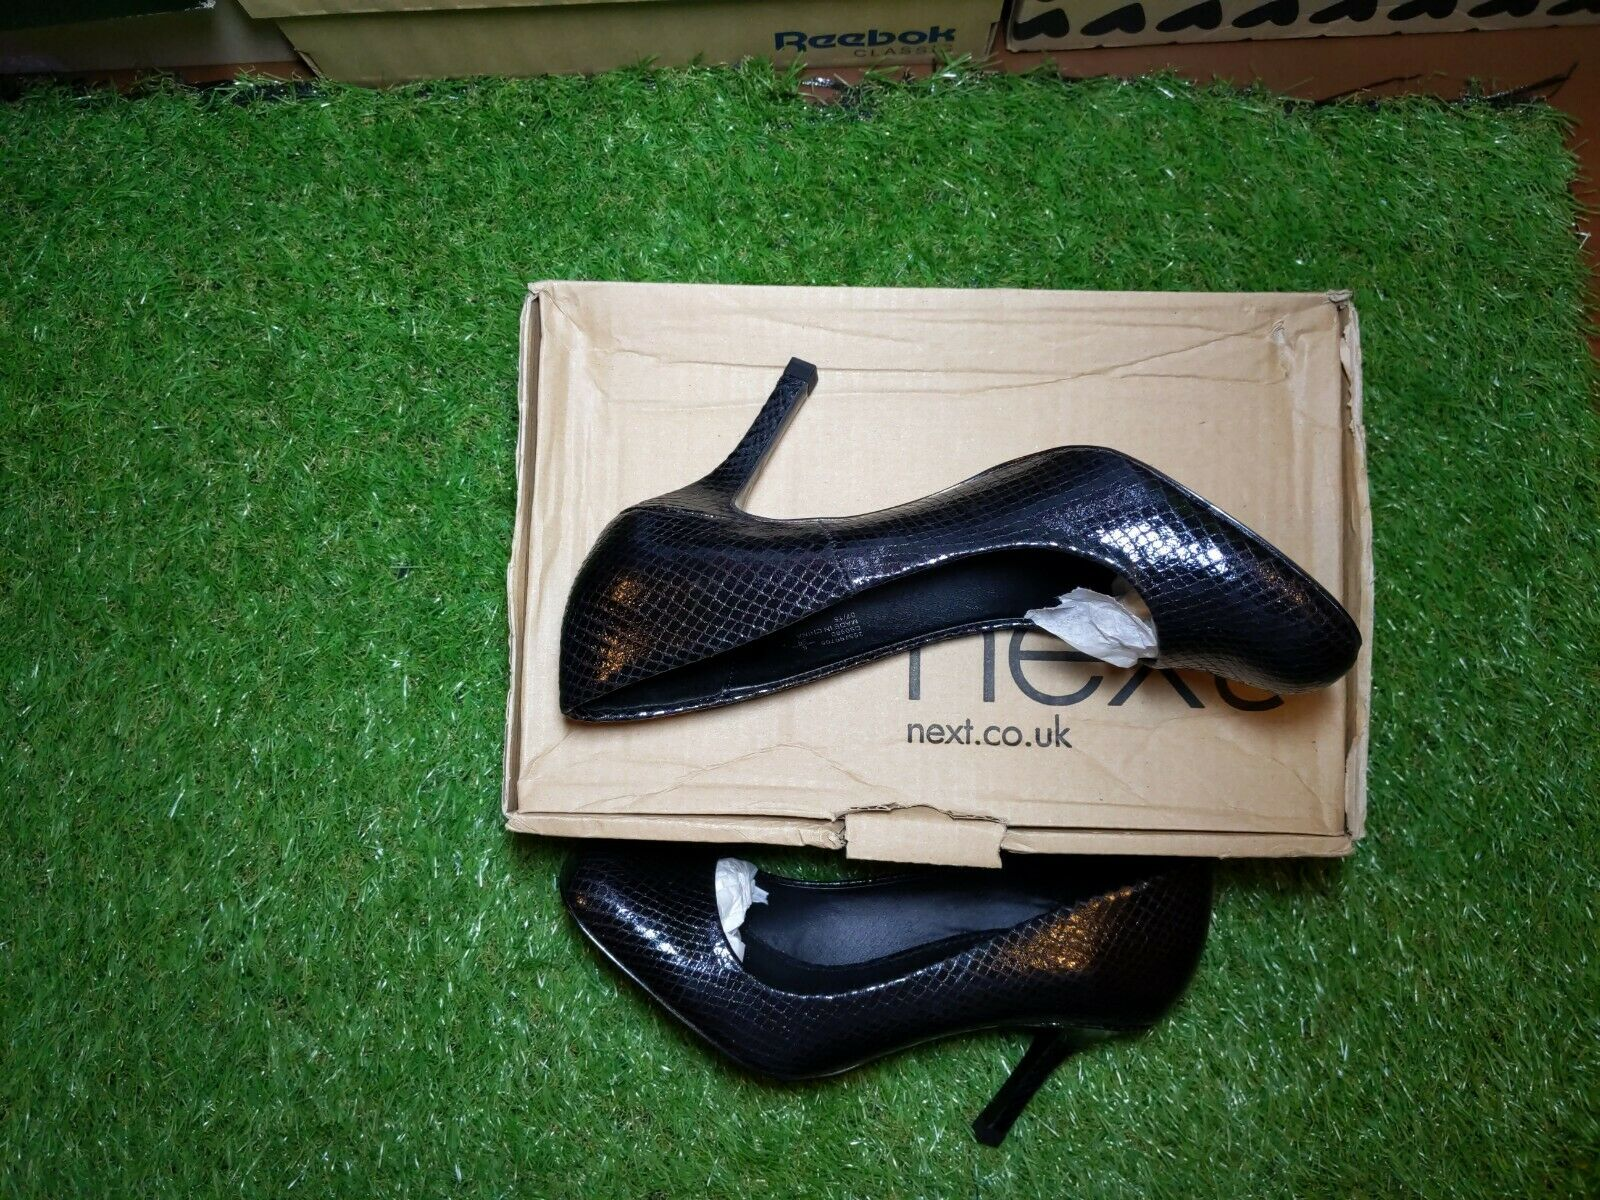 New Next size UK 6. EU. 39. black snake-skin effect high heels With Box & Tags.